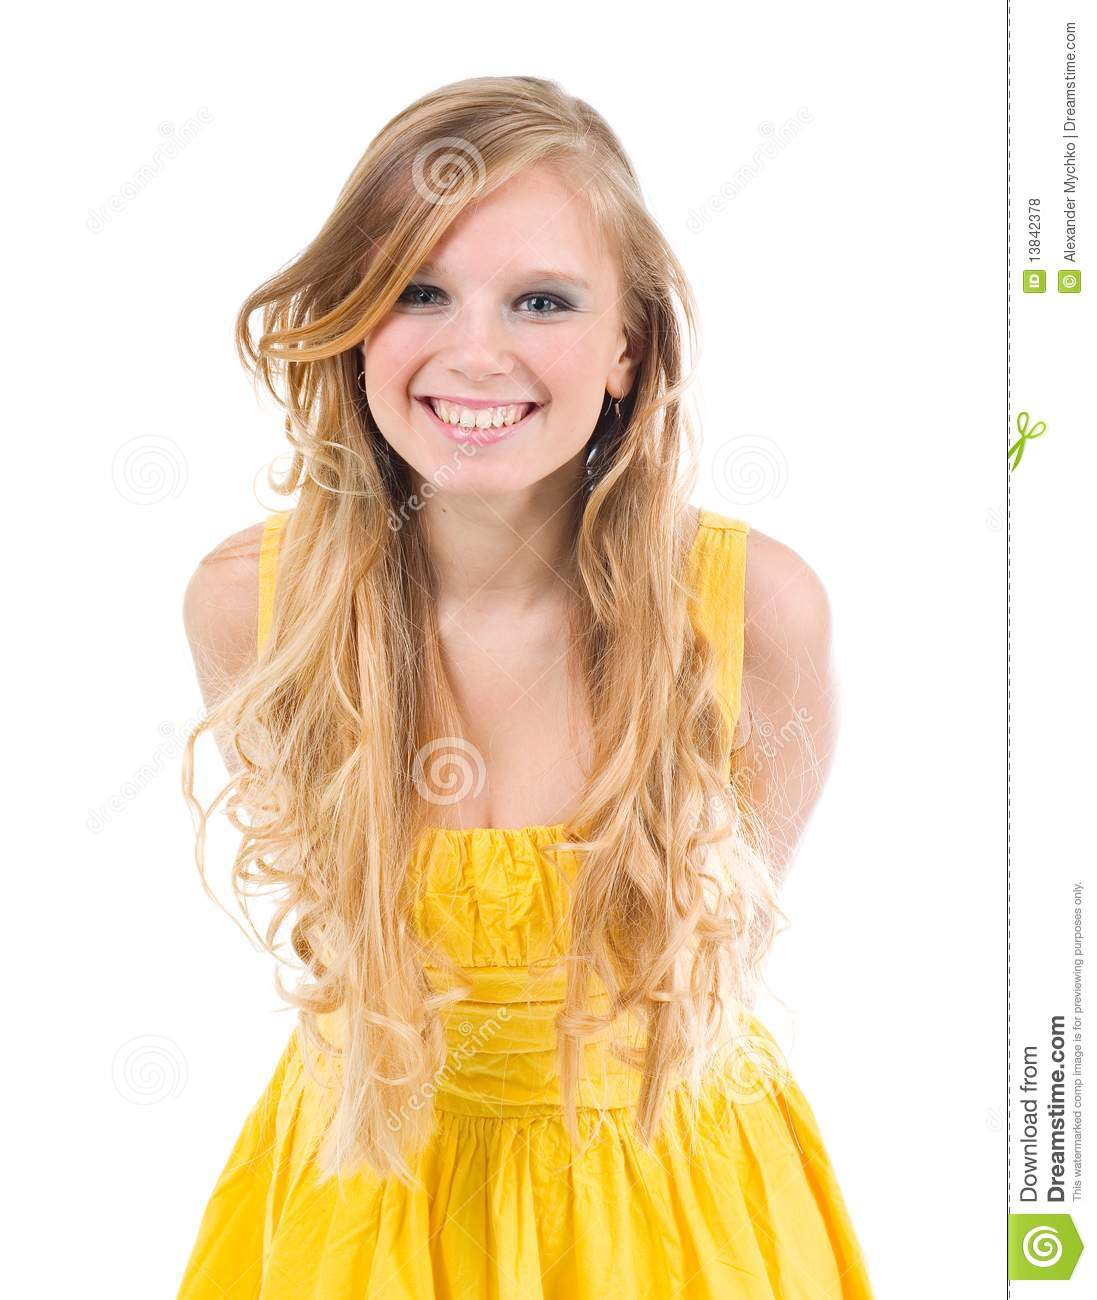 Https Www Dreamstime Com Royalty Free Stock Photos Happy Teenage Girl Isolated Image13842378